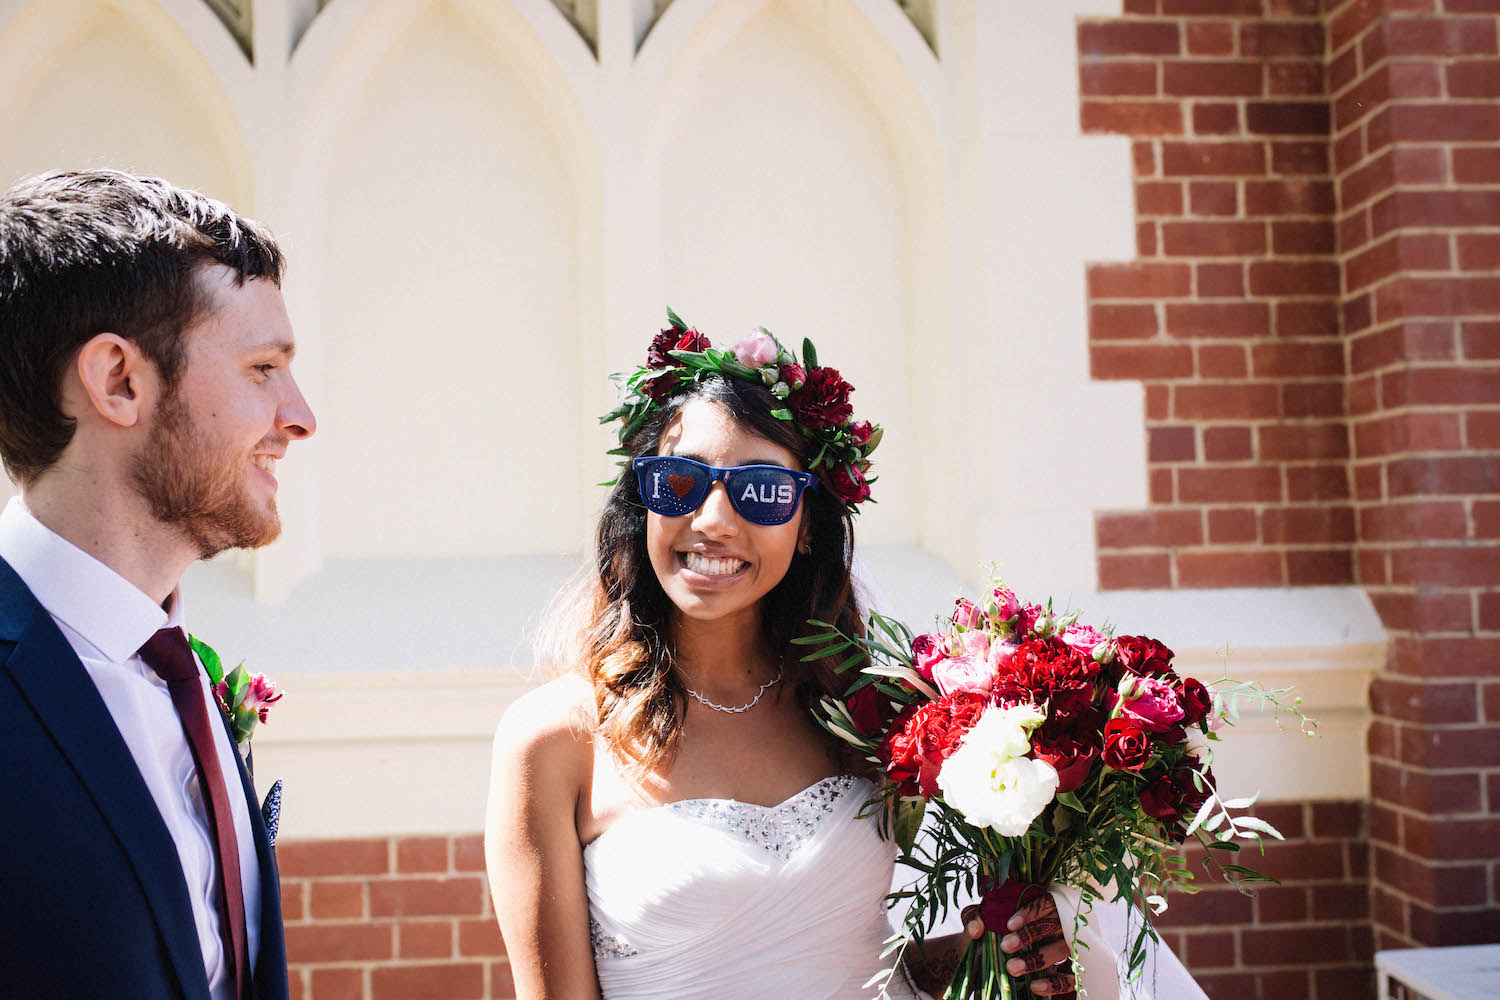 The Bride & Groom outside St Matthew's Anglican Church after their Subiaco wedding ceremony